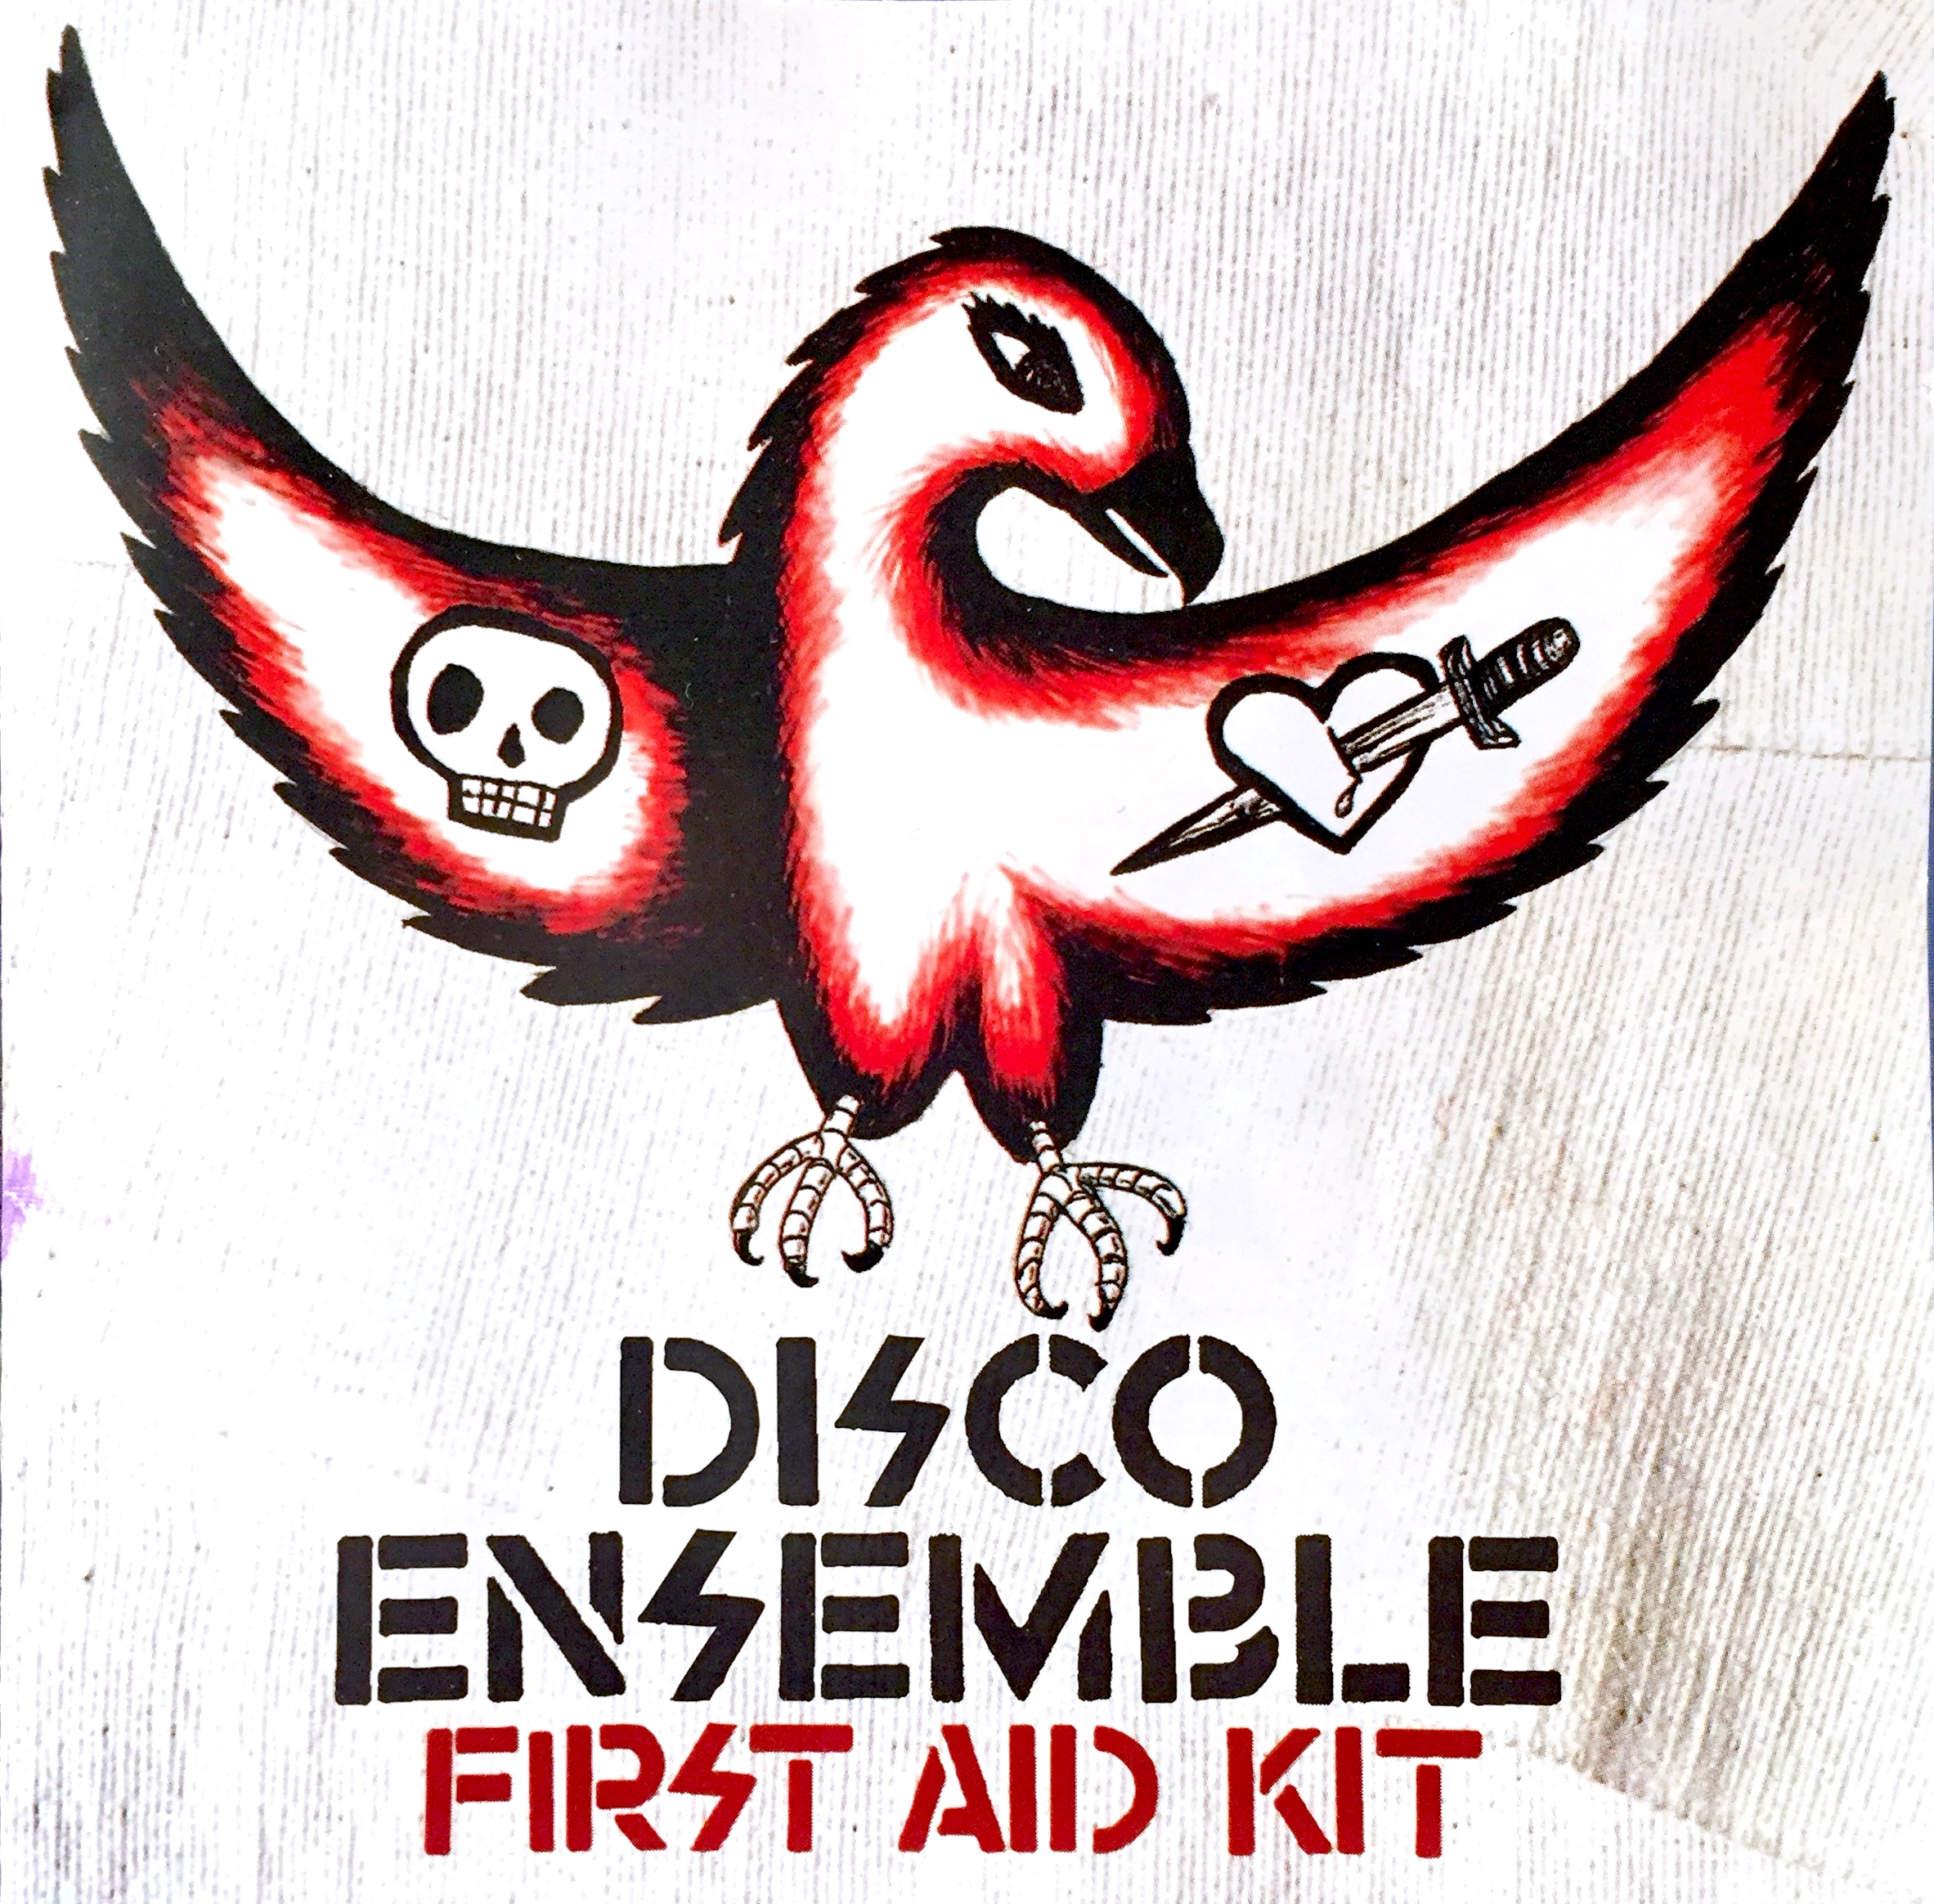 Disco Ensemble: First Aid Kit (2005).